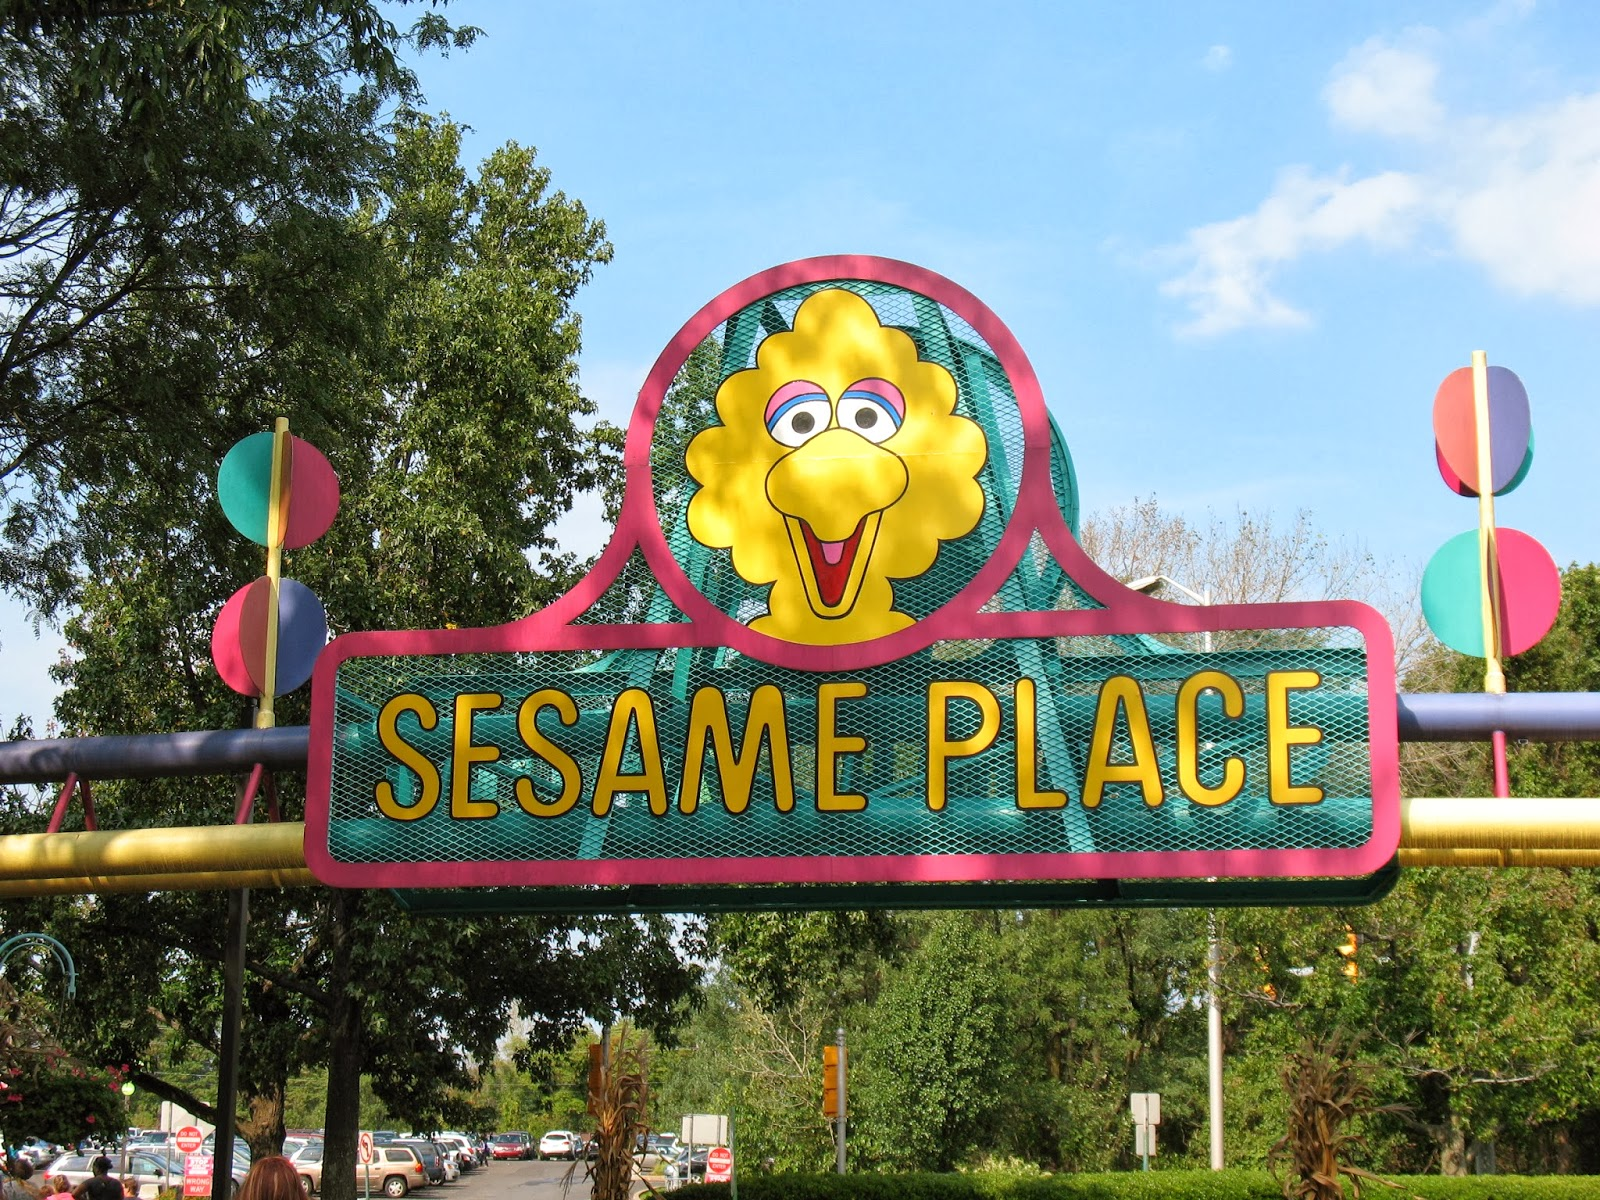 the entrance to sesame place - Sesame Place Halloween